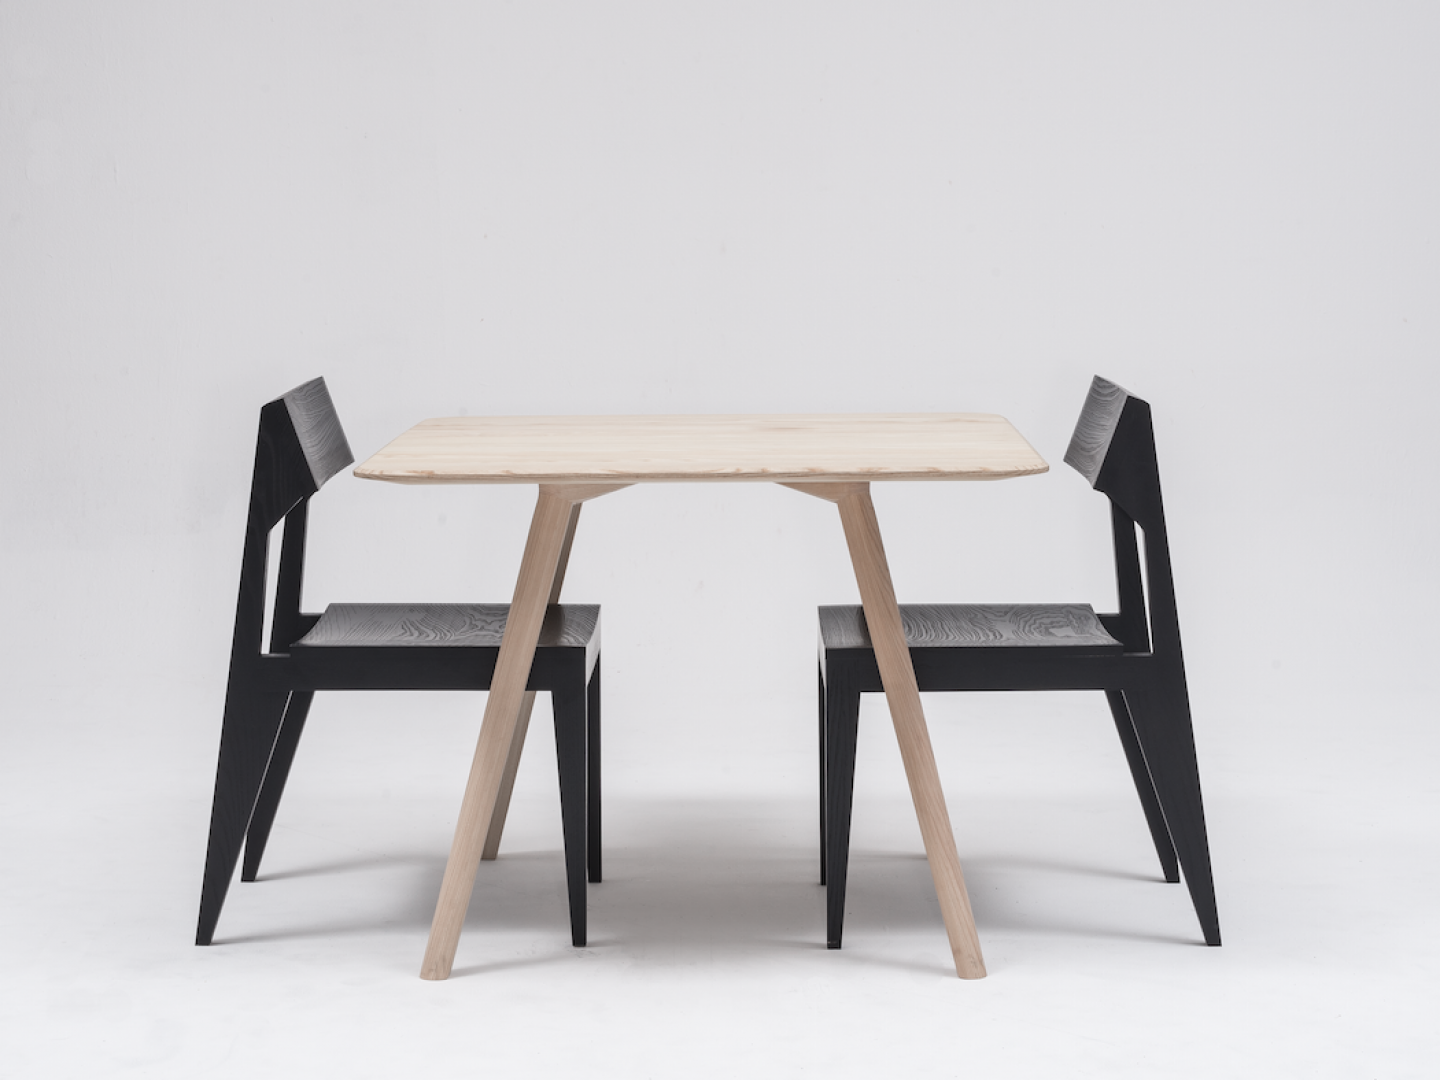 objekte-unserer-tage-08-studio-12-meyer-table-(high-res)